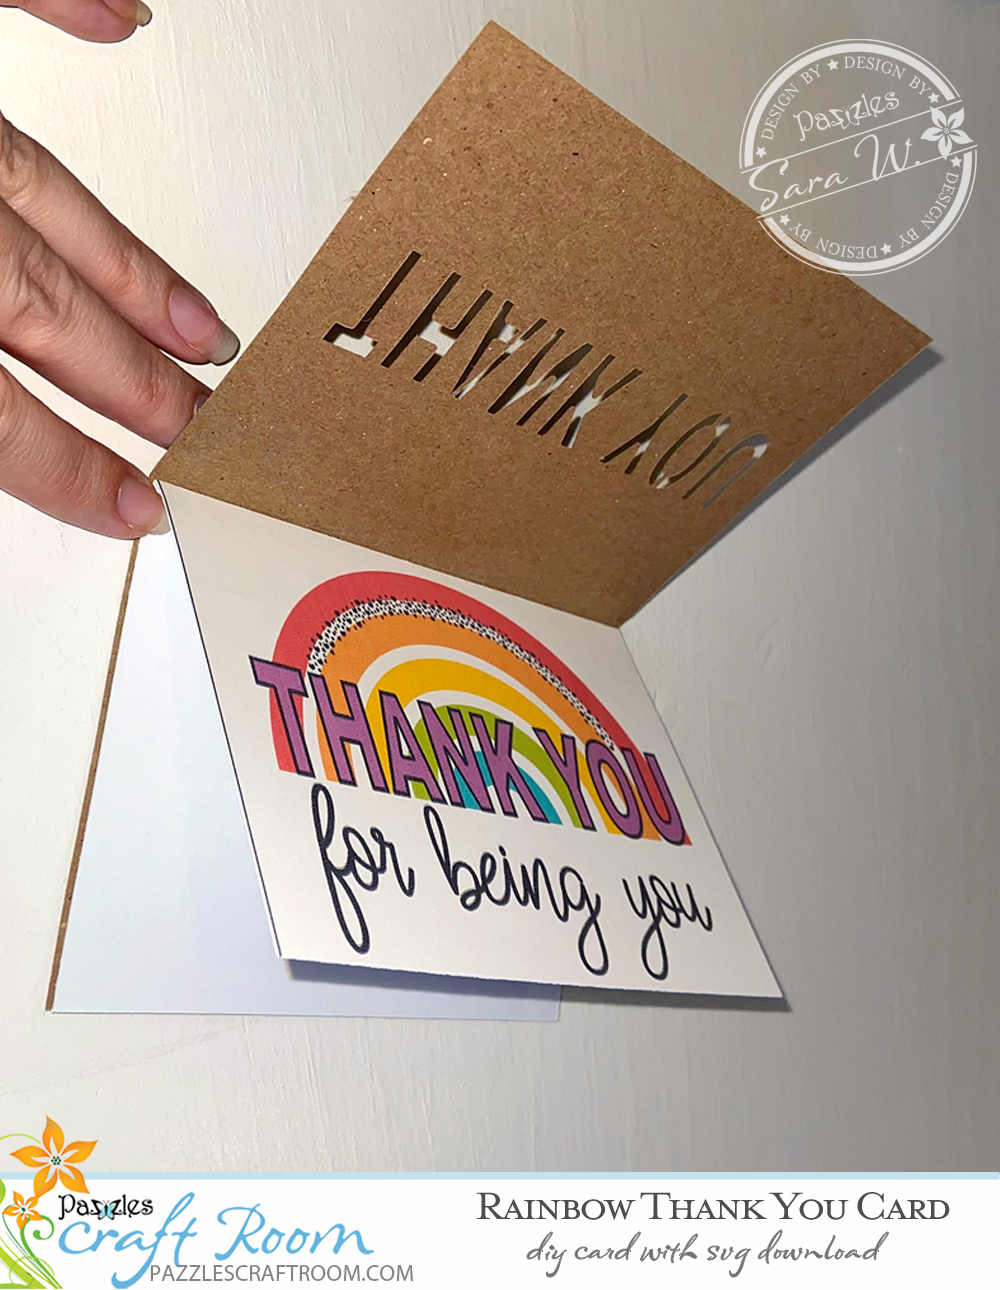 Pazzles DIY Rainbow Thank You Card. Instant SVG download compatible with all major electronic cutters including Pazzles Inspiration, Cricut, and Silhouette Cameo. Design by Sara Weber.